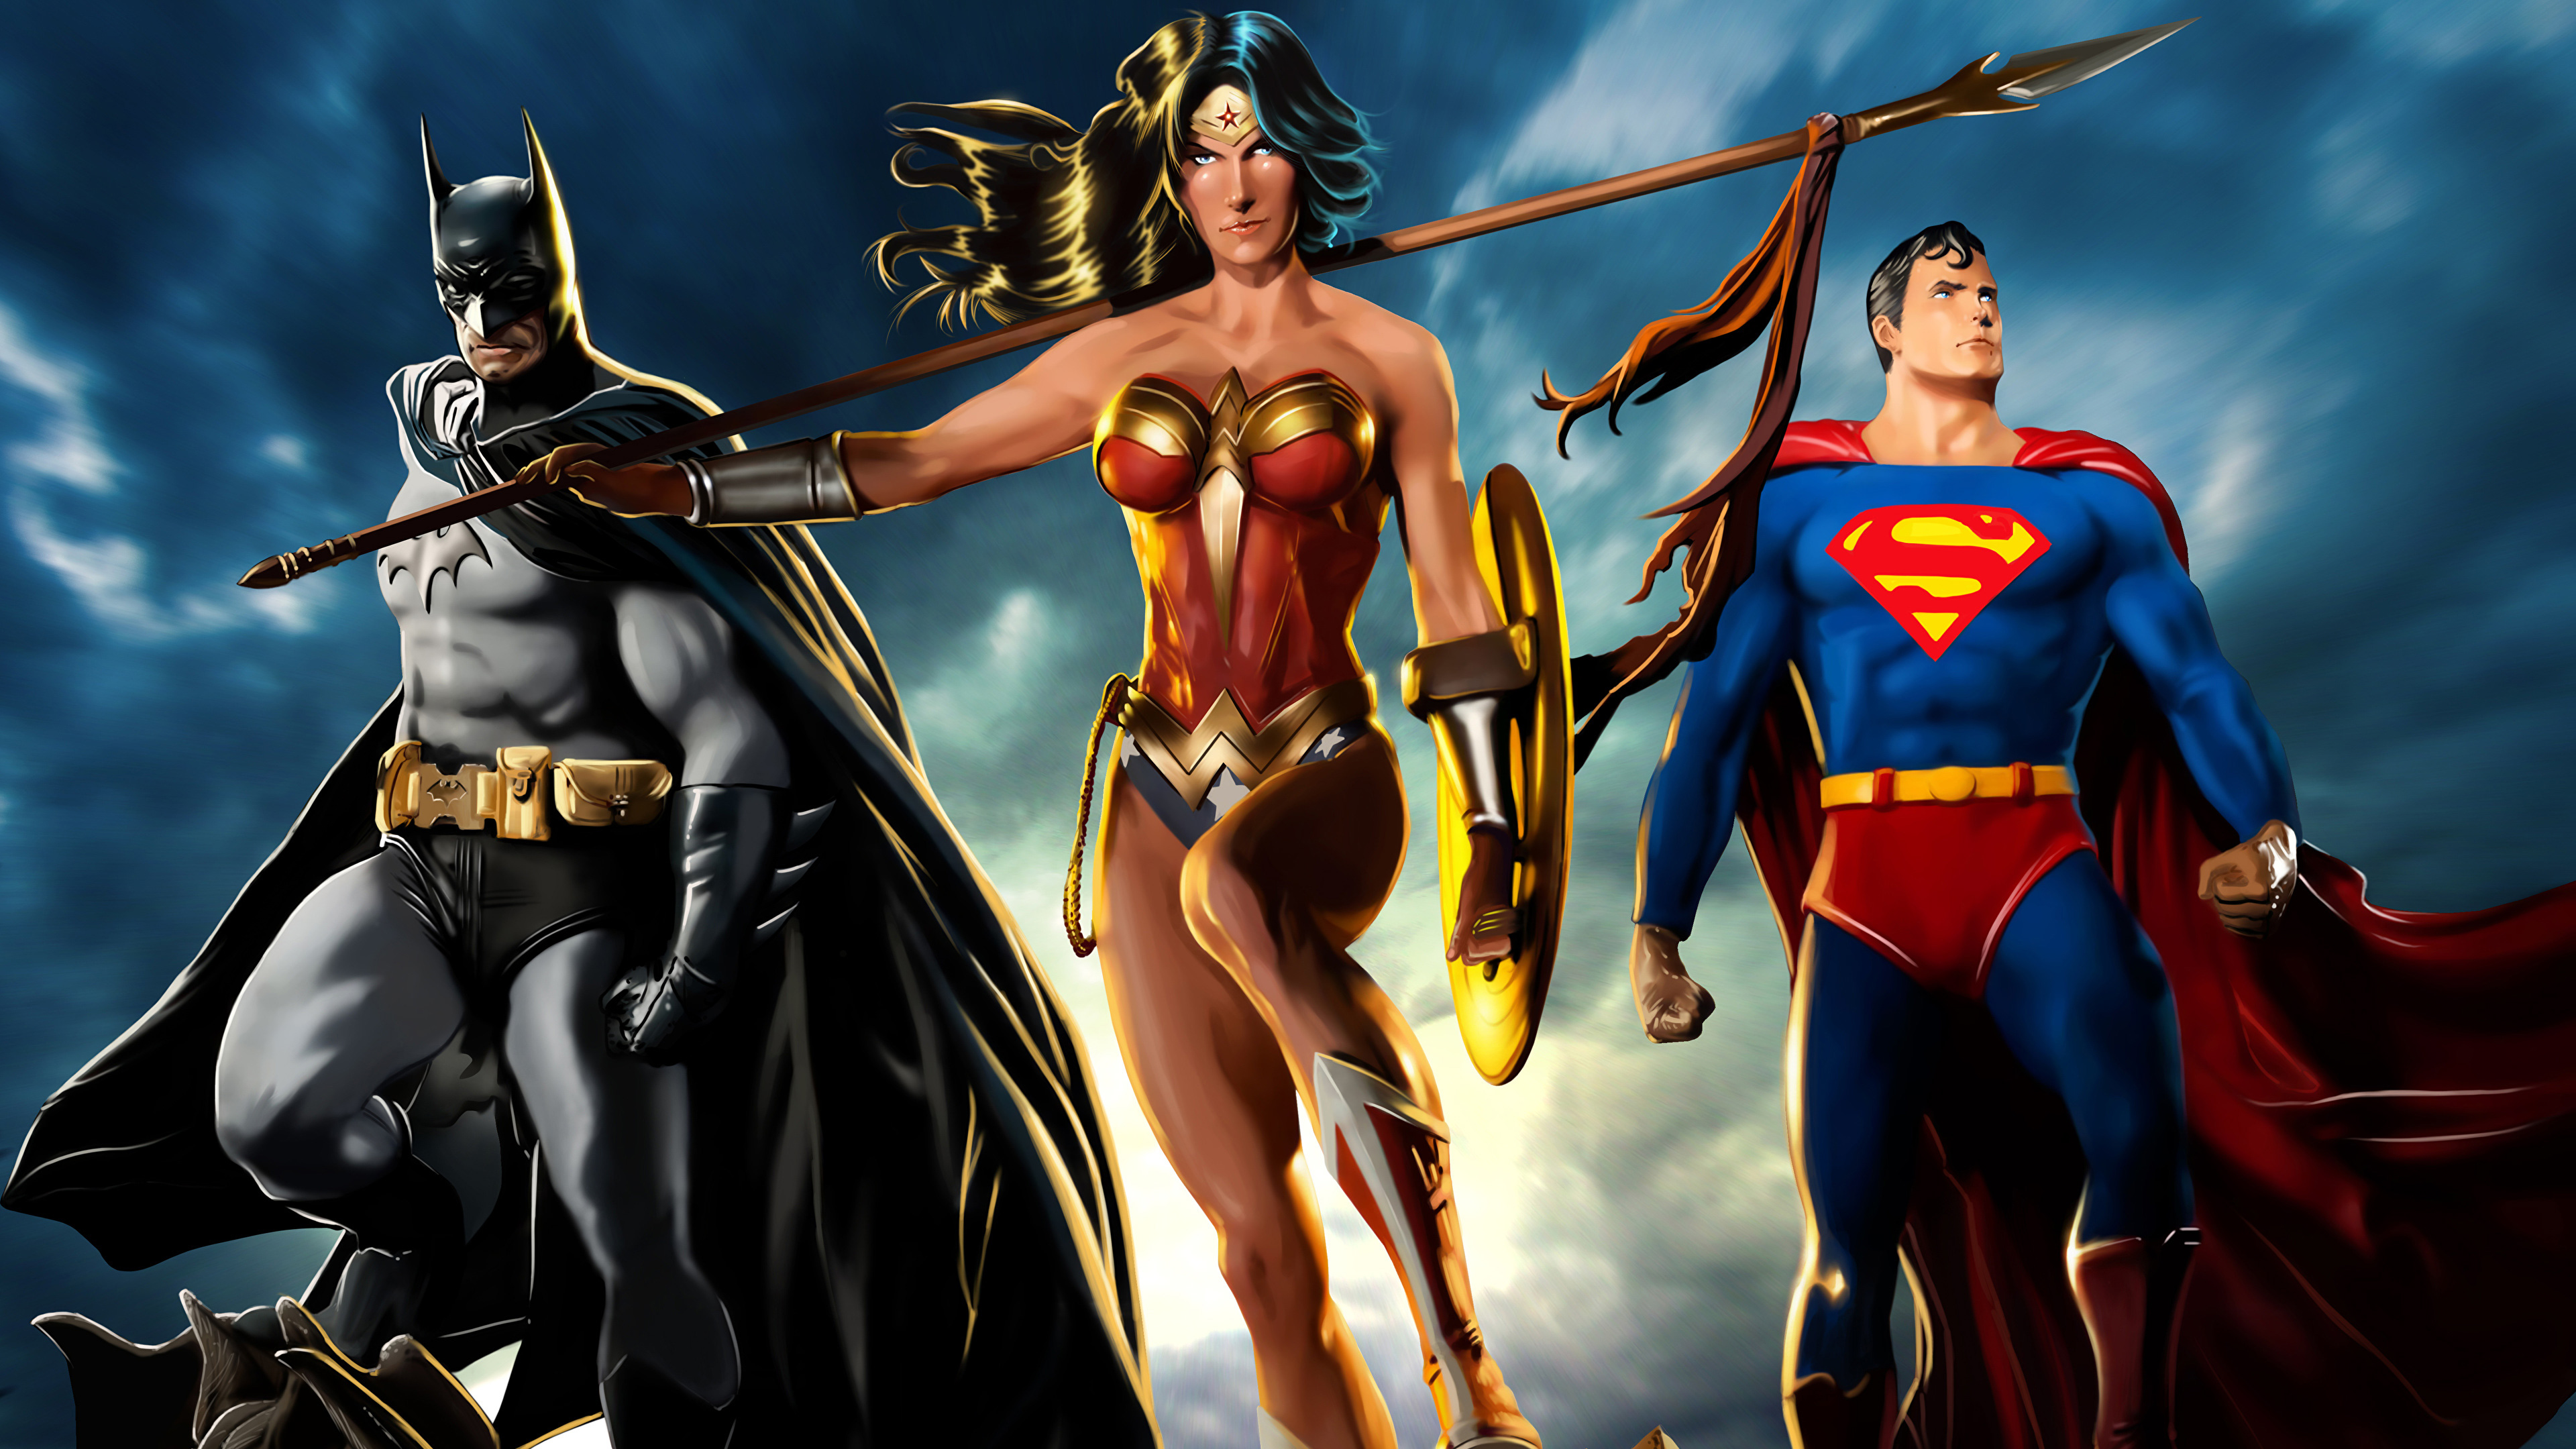 the trinity 4k artwork 1537646064 - The Trinity 4k Artwork - wonder woman wallpapers, superman wallpapers, superheroes wallpapers, hd-wallpapers, digital art wallpapers, batman wallpapers, artwork wallpapers, art wallpapers, 4k-wallpapers